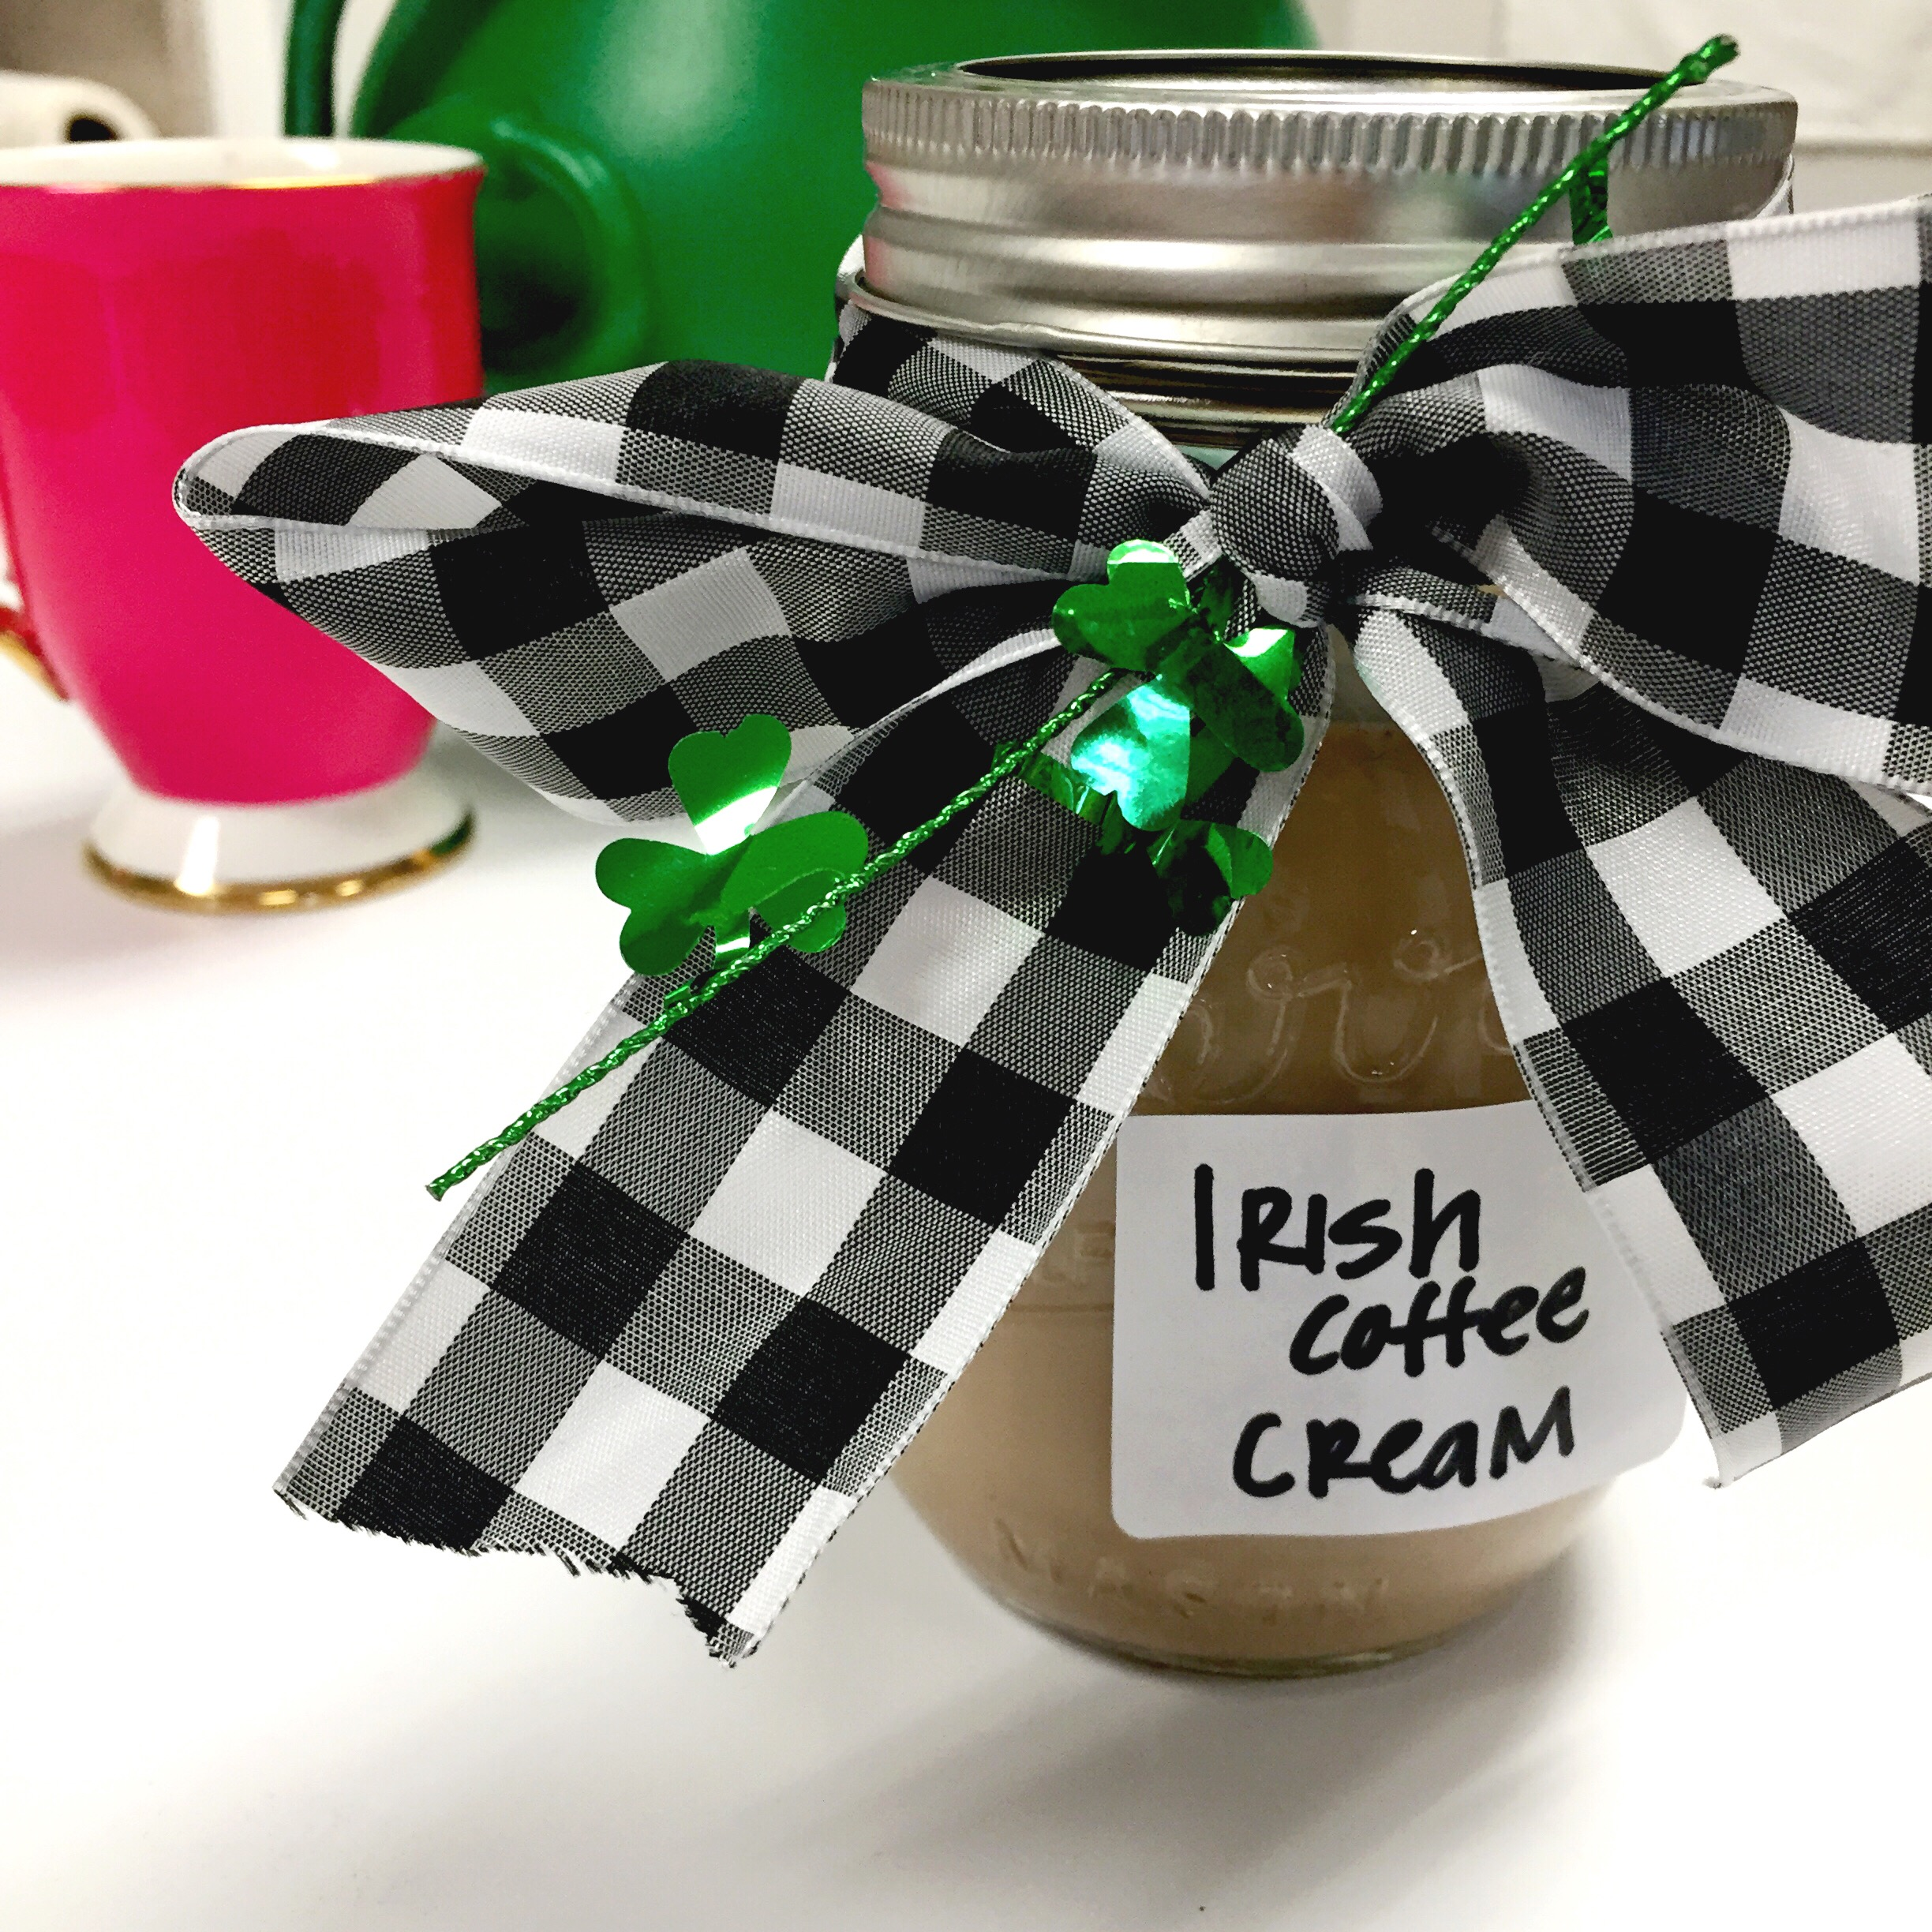 Luck of the Irish Coffee Creamer. Makes a great St. Patrick's Day gift for a friend or co-worker. recipe & tutorial on www.ChefShayna.com